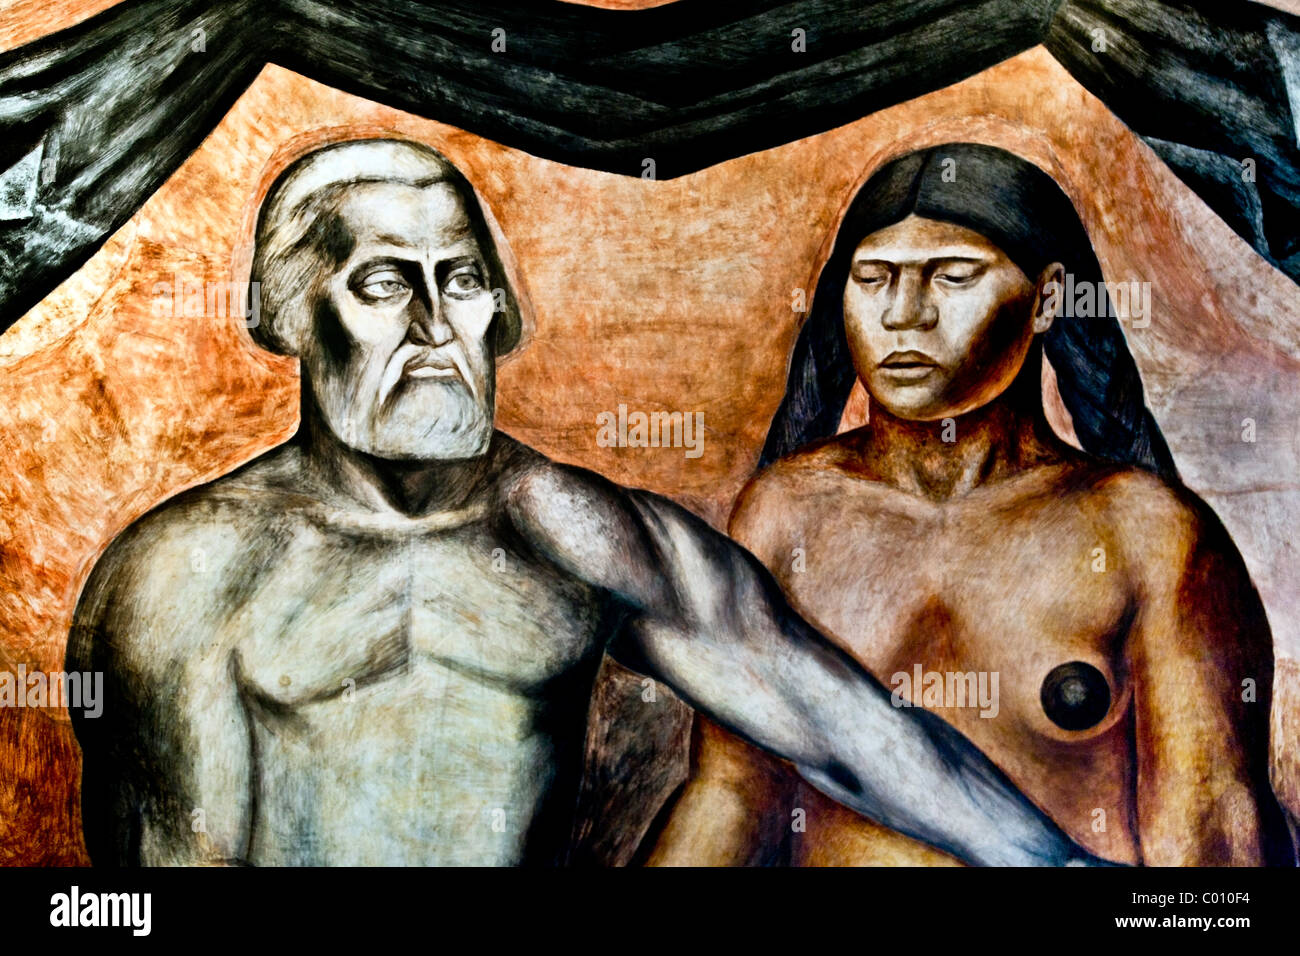 detail view Orozco mural of unsmiling grim Spanish conqueror Cortes with his bare breasted noble Indian mistress - Stock Image